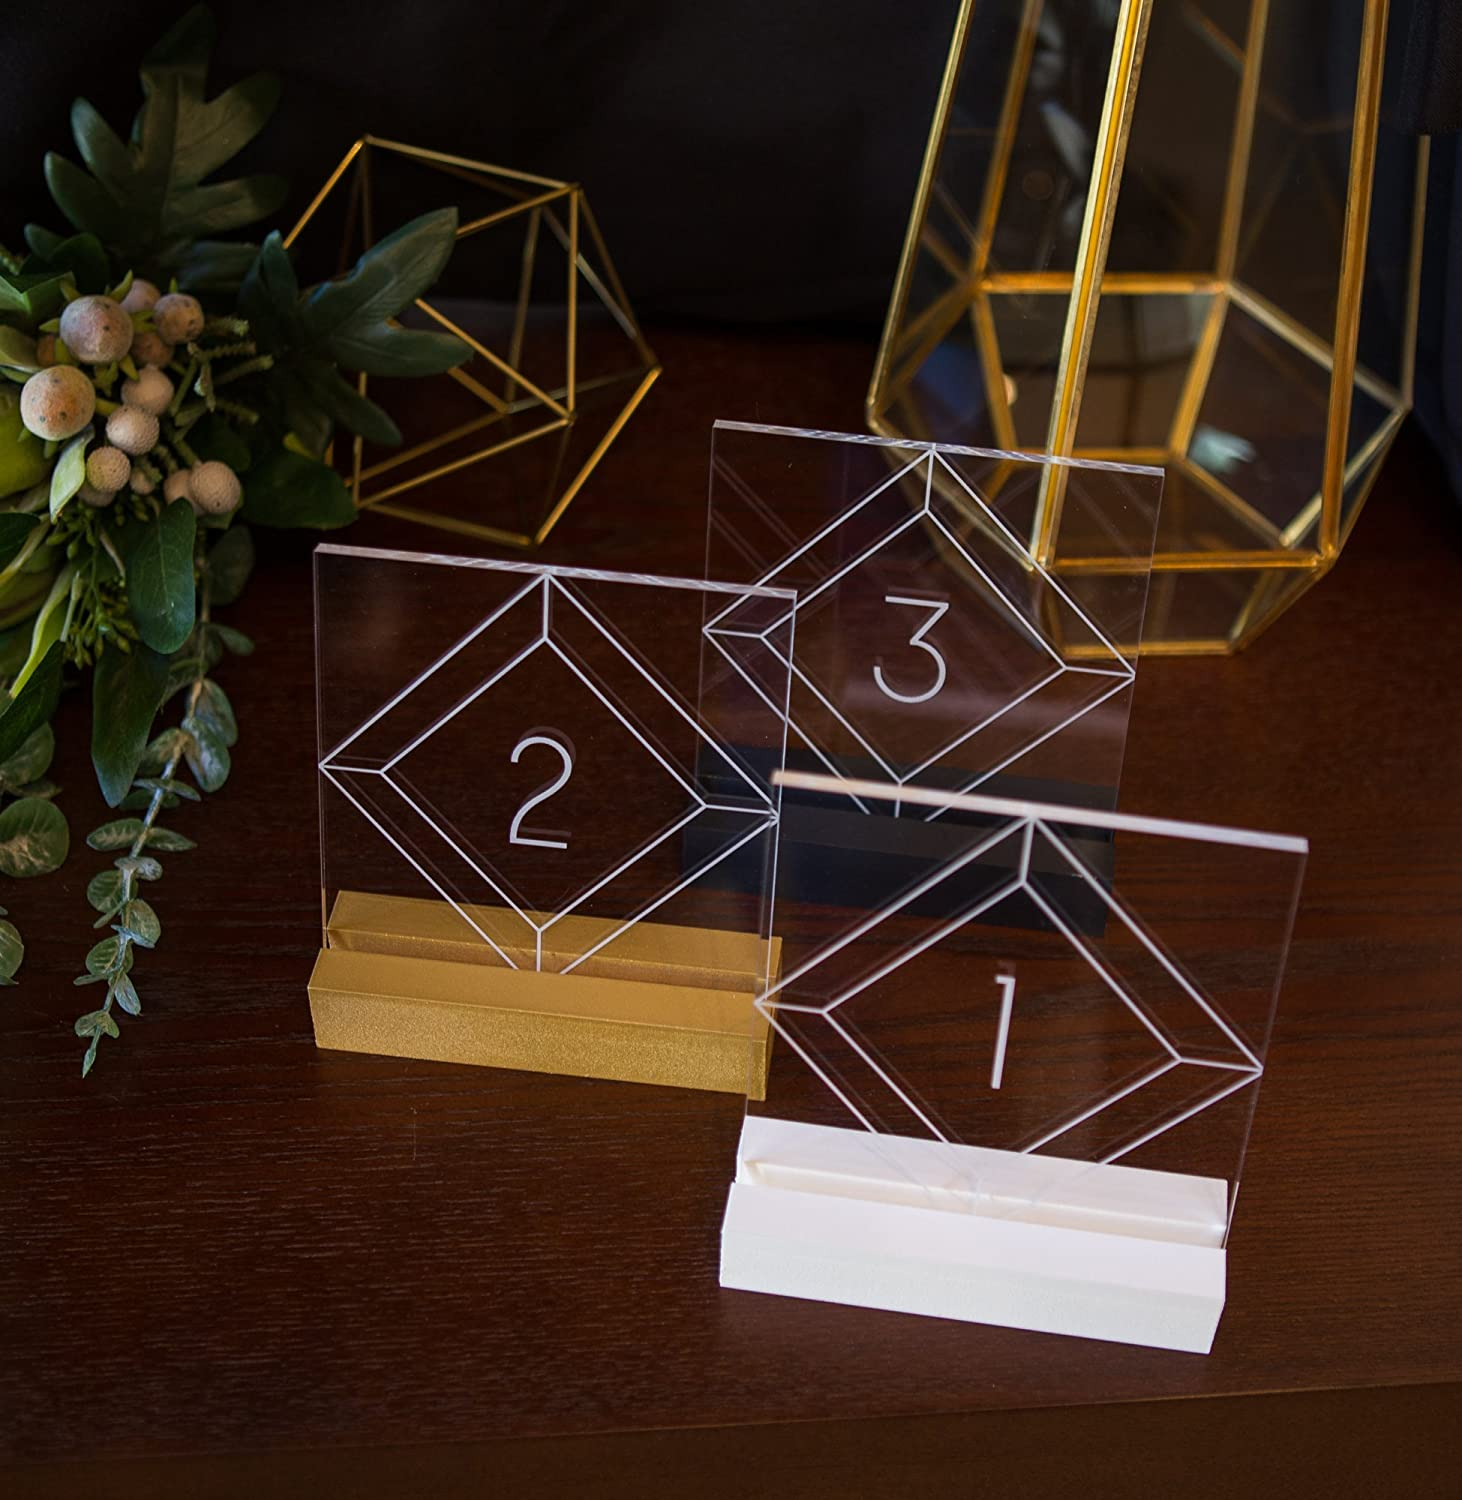 Acrylic Table Numbers for Wedding Tables, Party or Event, Clear Engraved Decor for Wedding Table Numbers, Wedding Signs